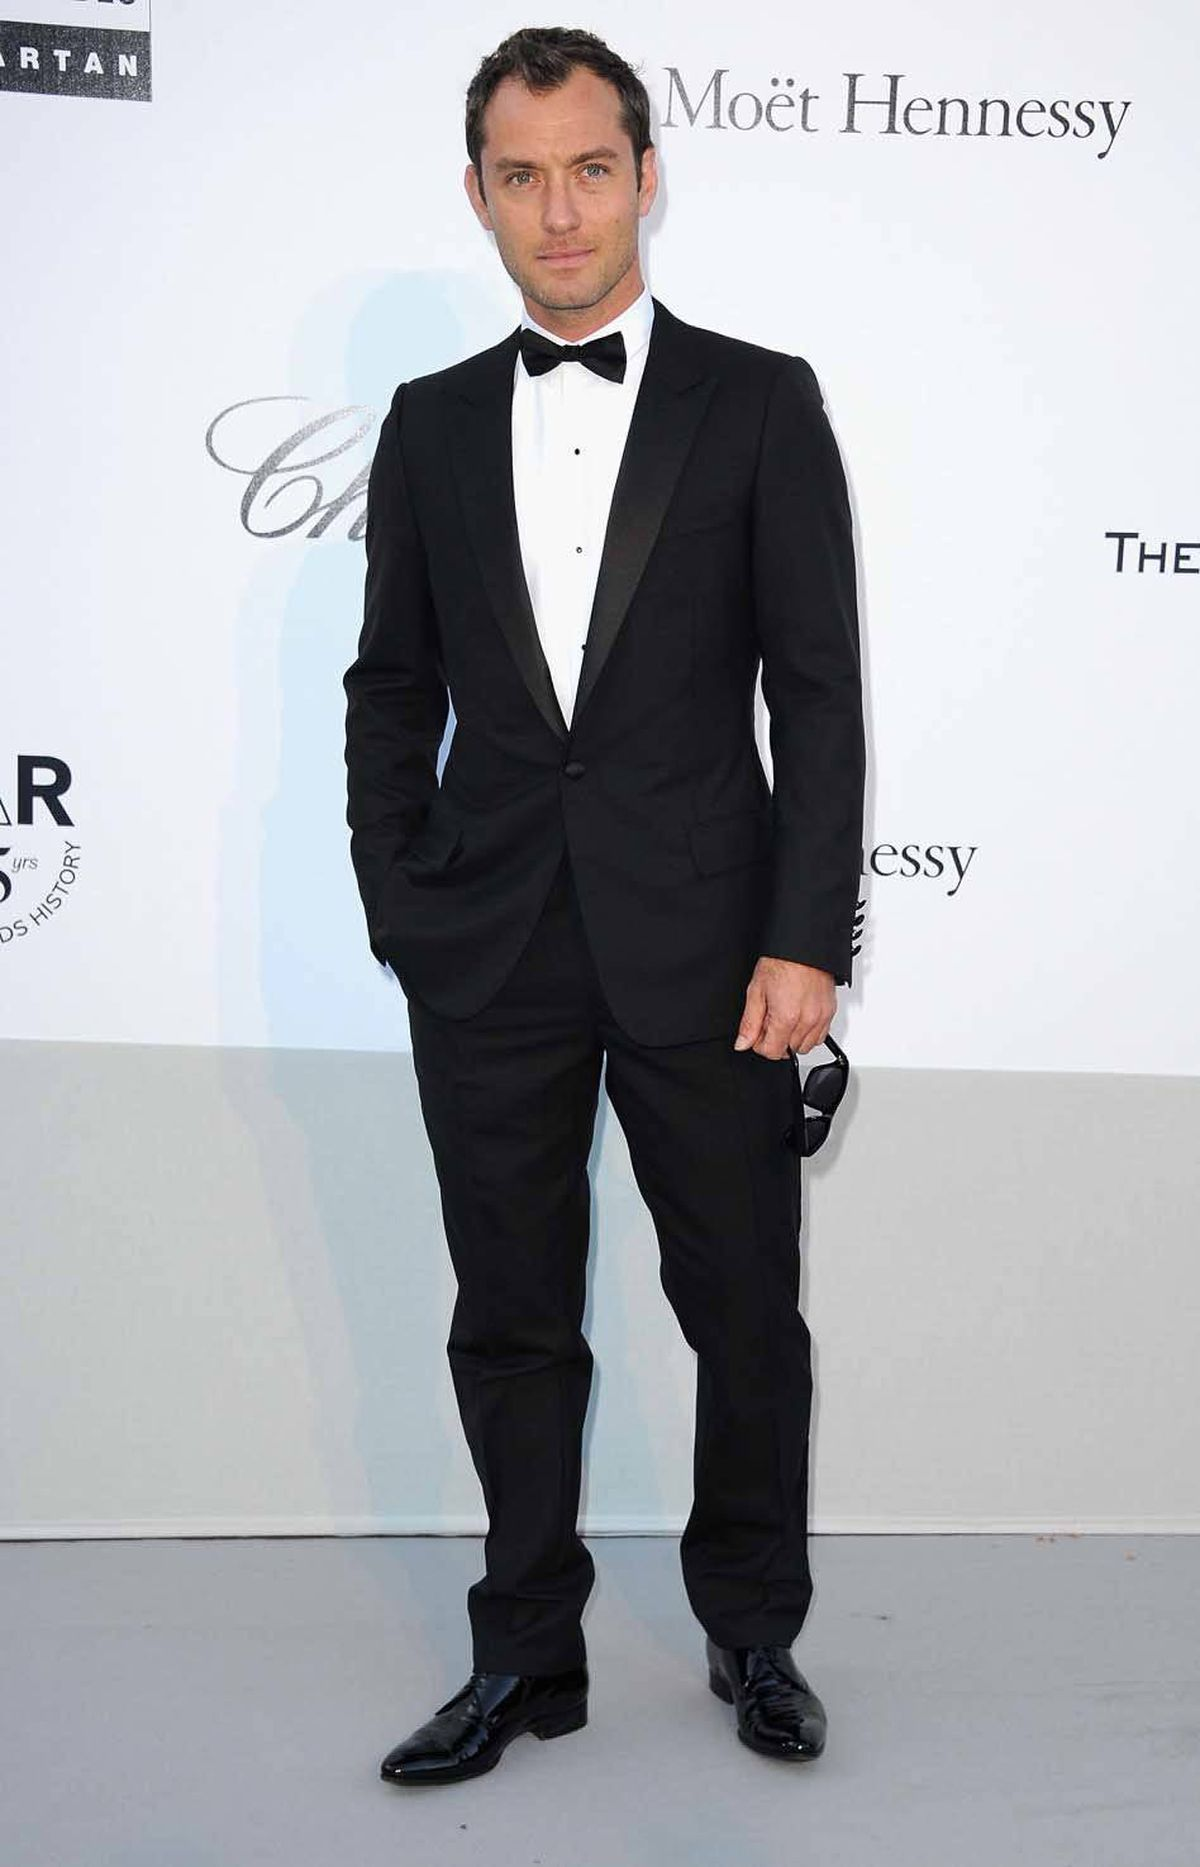 Jude Law attends amfAR's Cinema Against AIDS Gala at the Cannes Film Festival on Thursday.